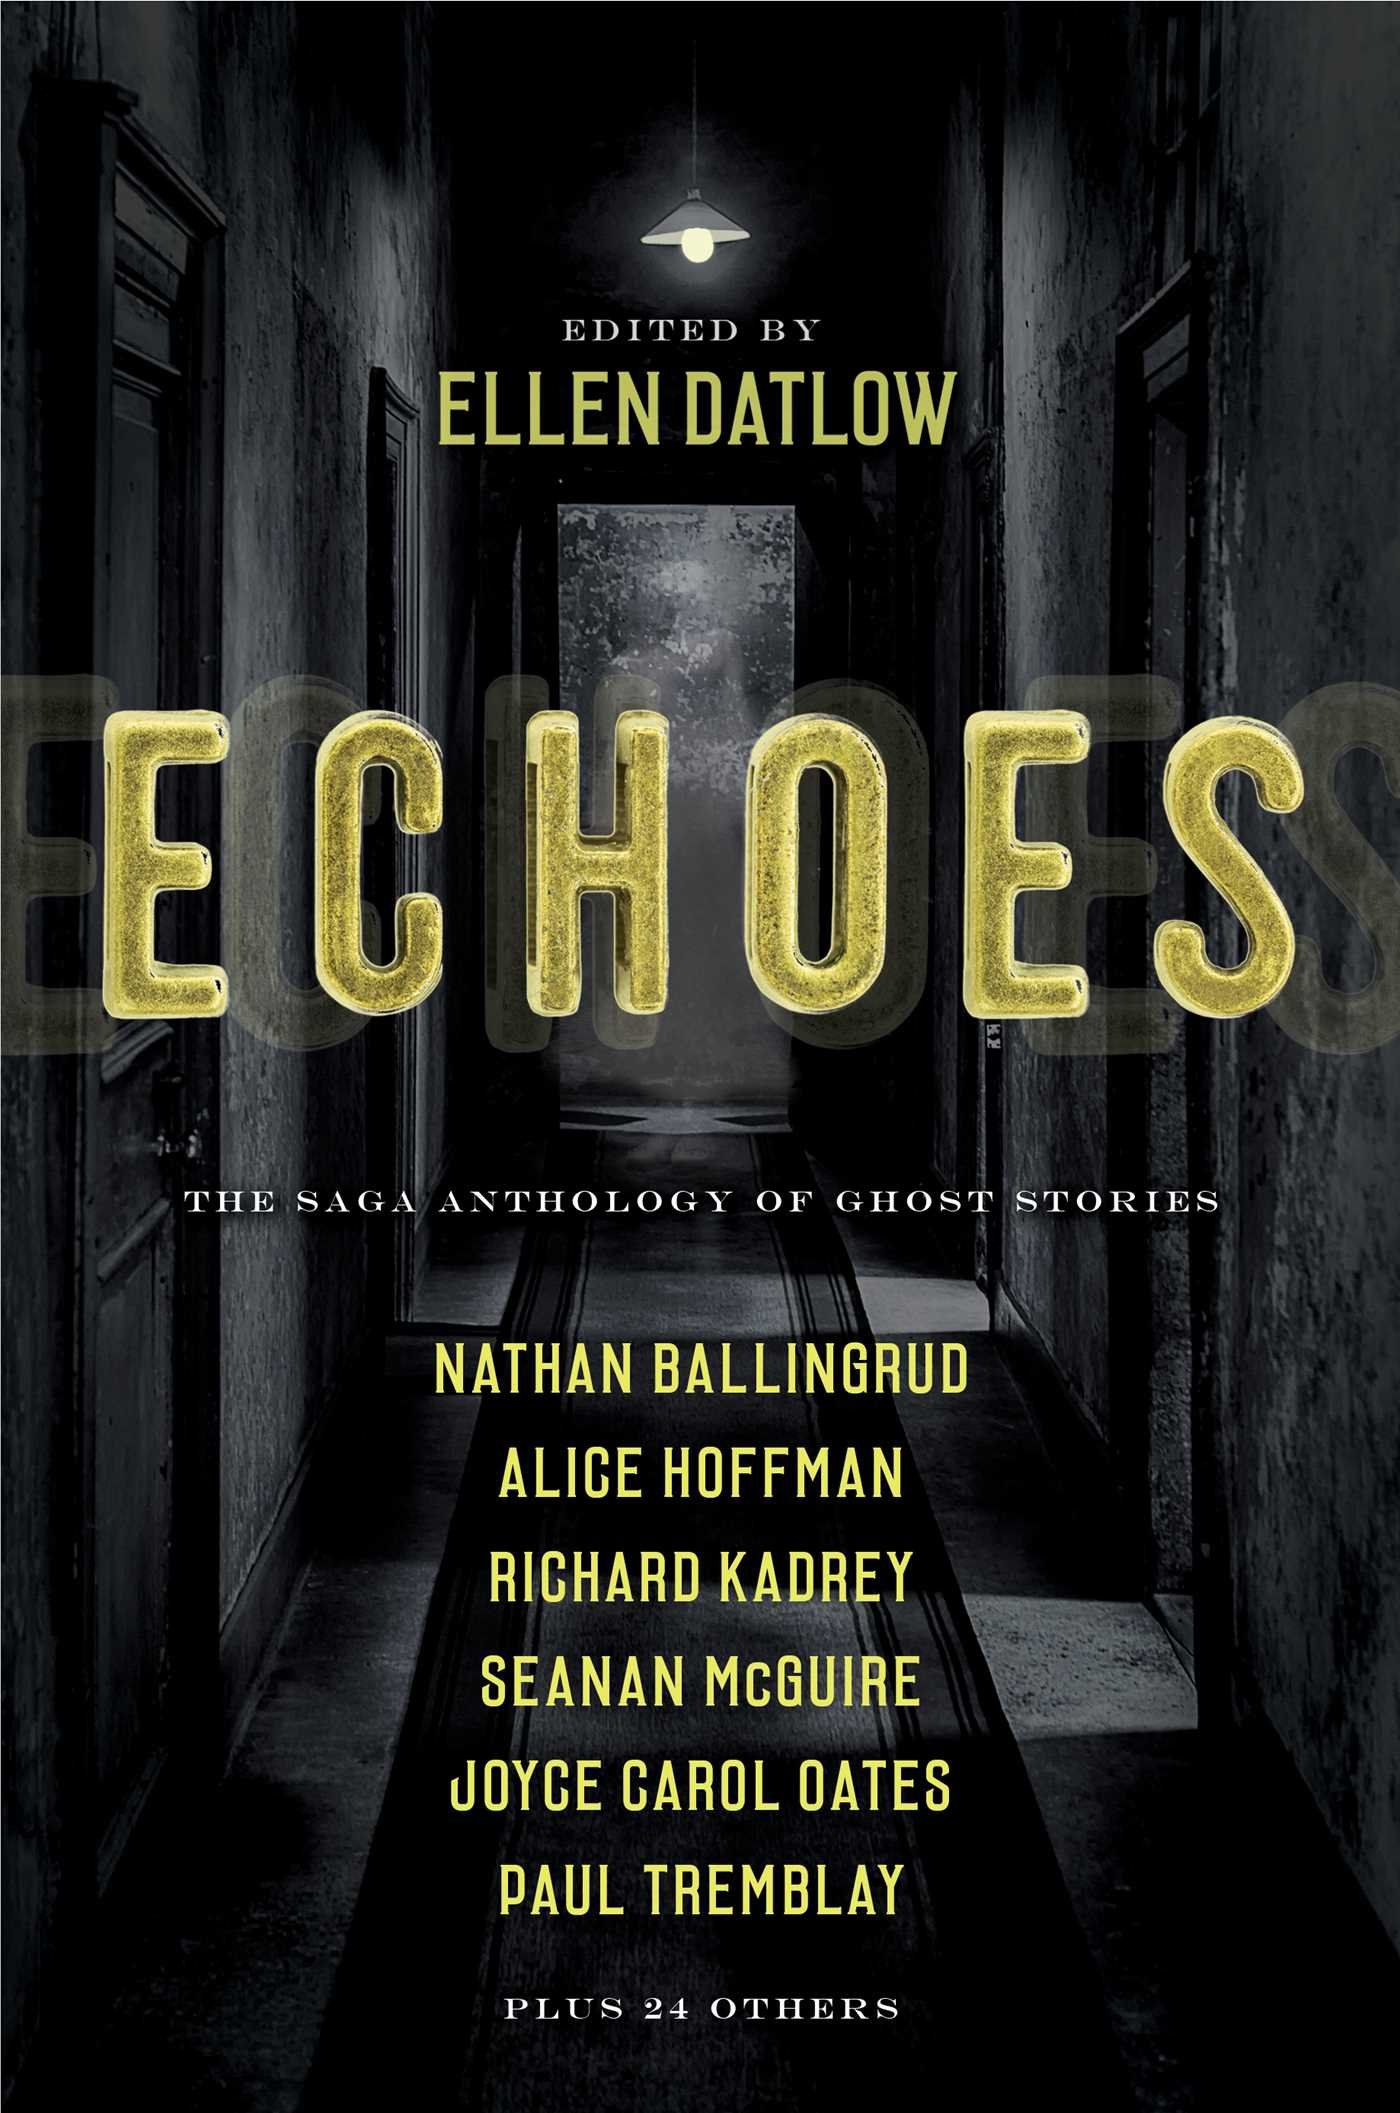 Book cover of Echoes an Anthology